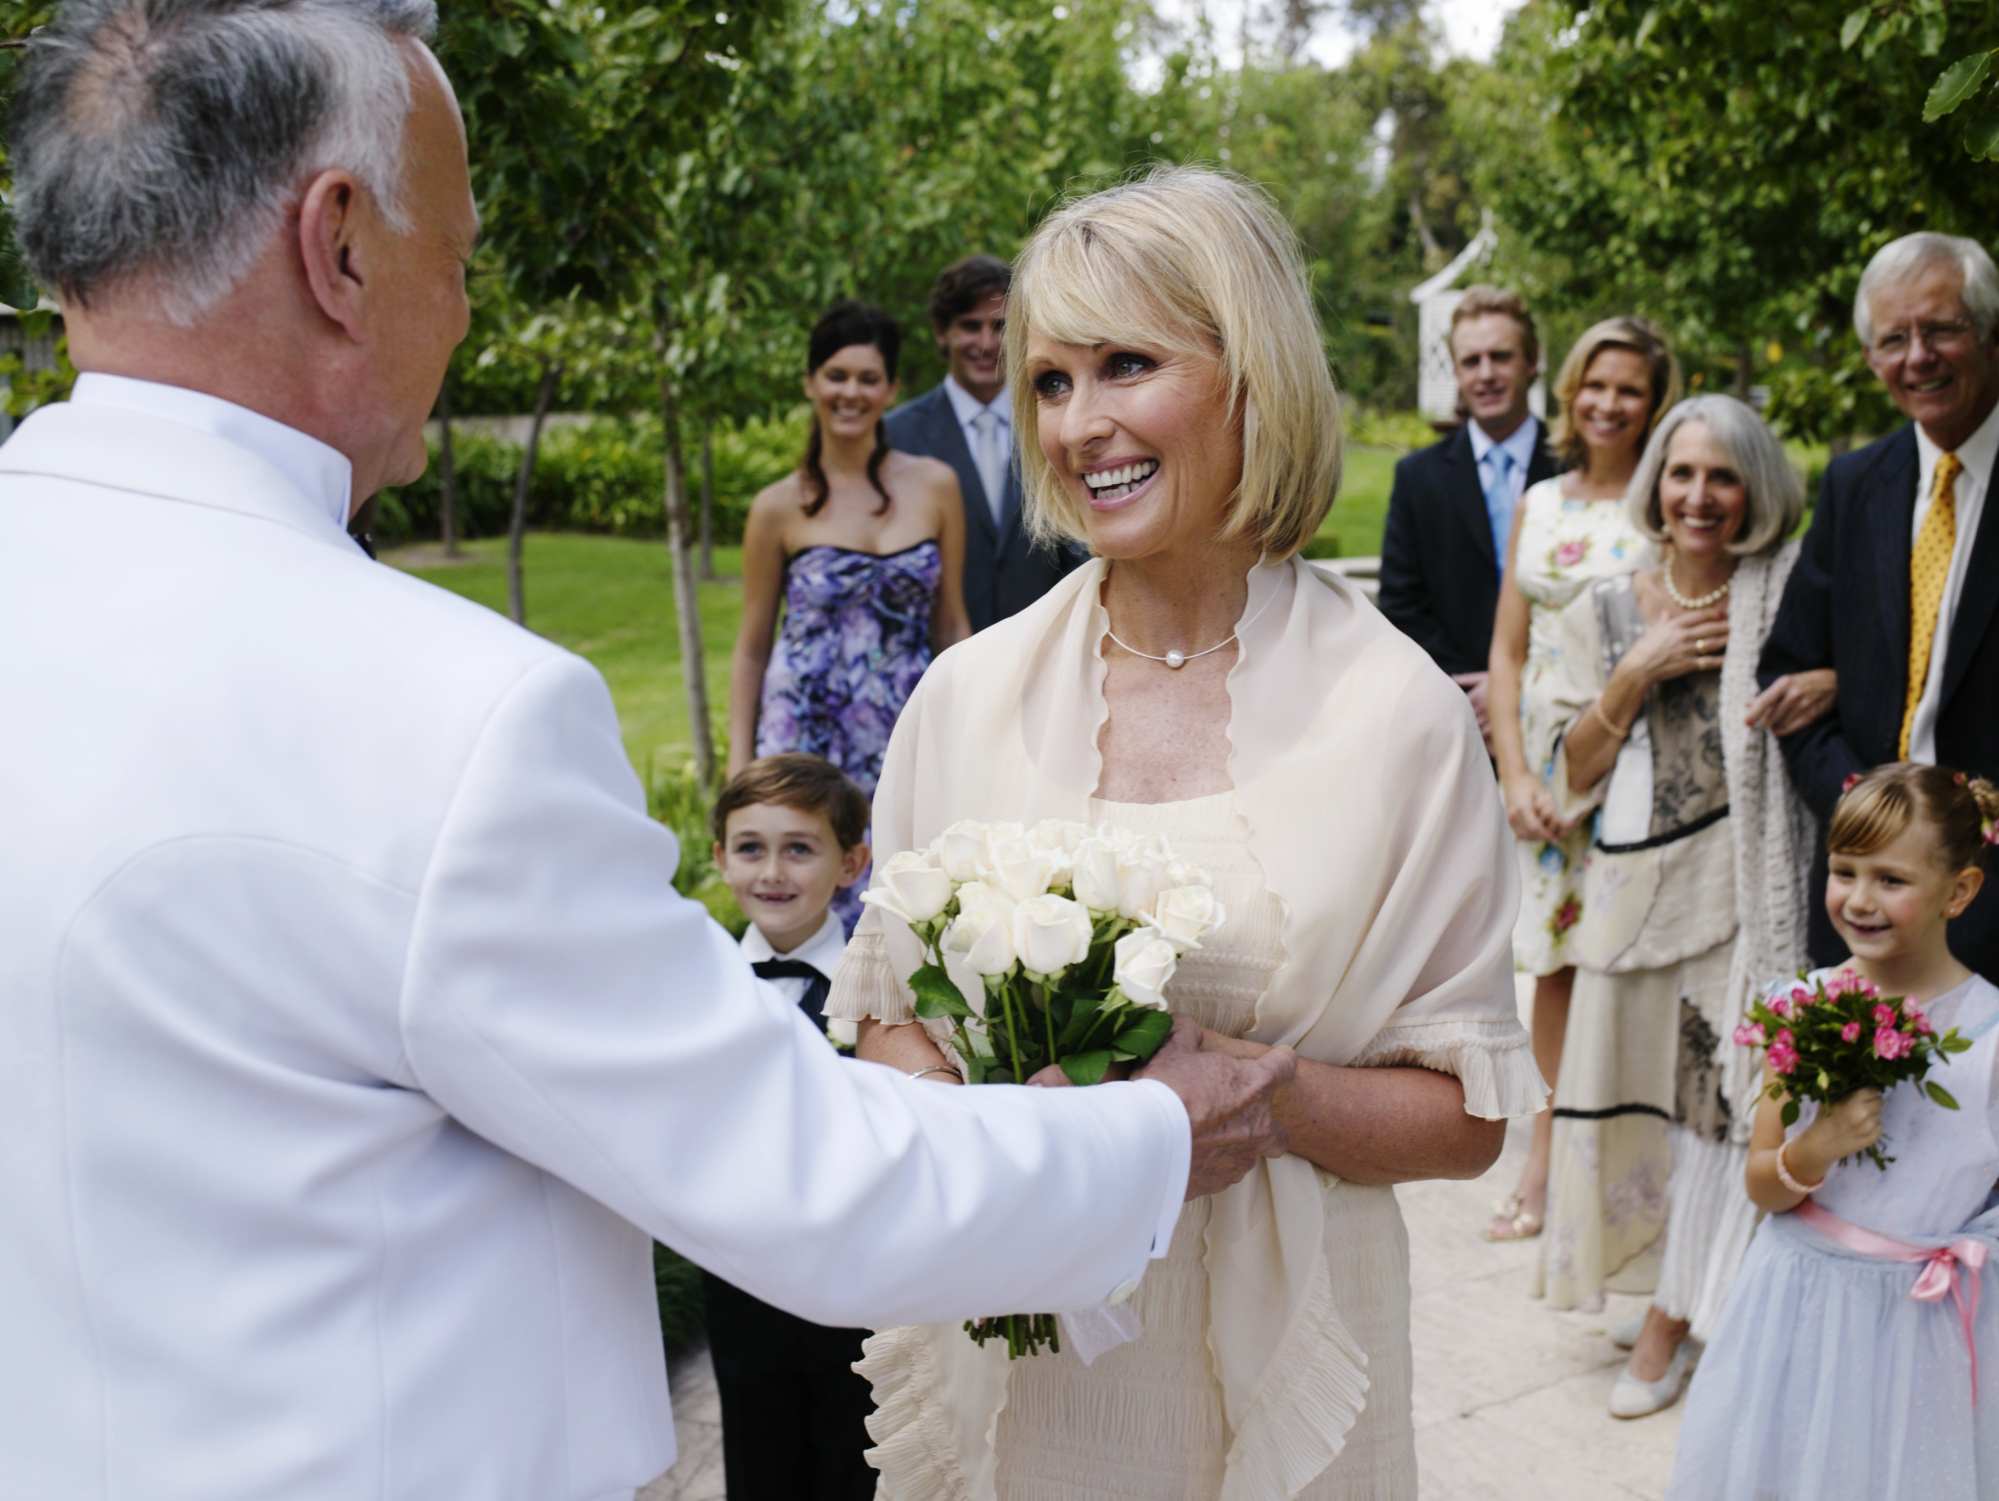 Wedding Gifts For Second Marriages Etiquette: Wedding Etiquette For A Widow's Second Marriage